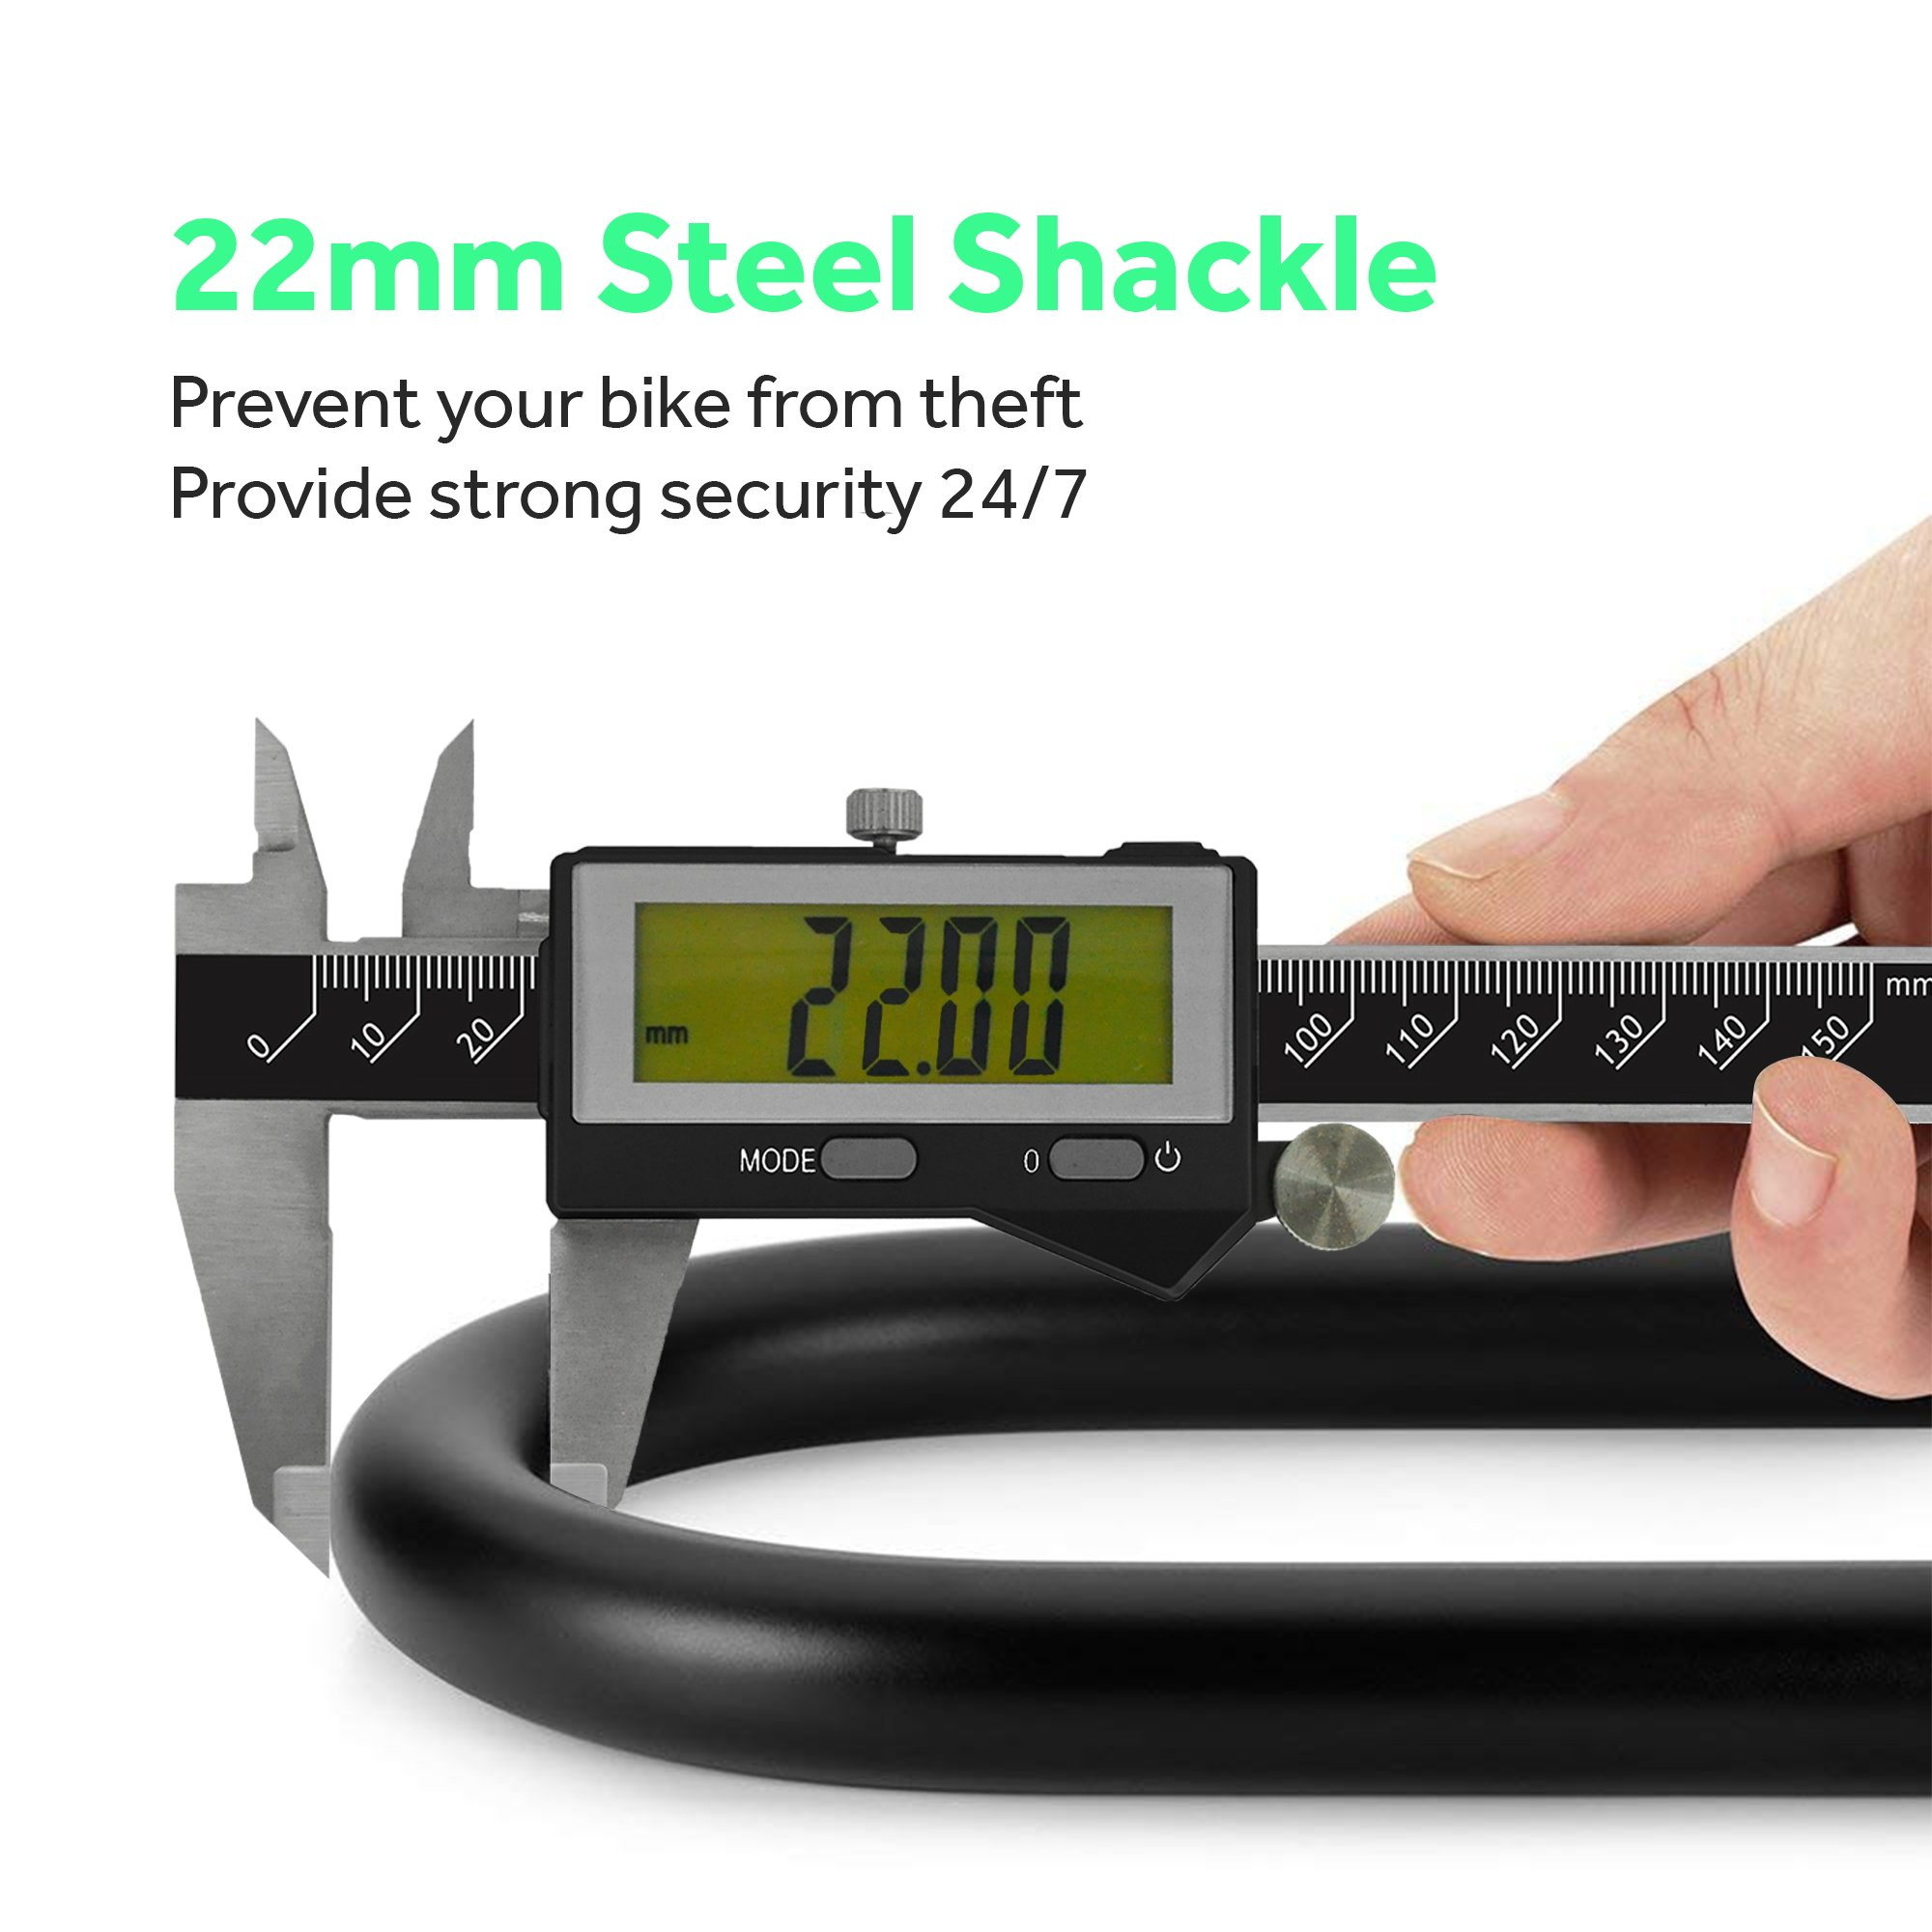 White Rock Gear Bike U Lock and Cable - Heavy Duty 16mm Bicycle Lock with 45'' Steel Flex Cable and 3 Keys + Mounting Bracket - Durable and Anti-Theft by White Rock Gear (Image #4)